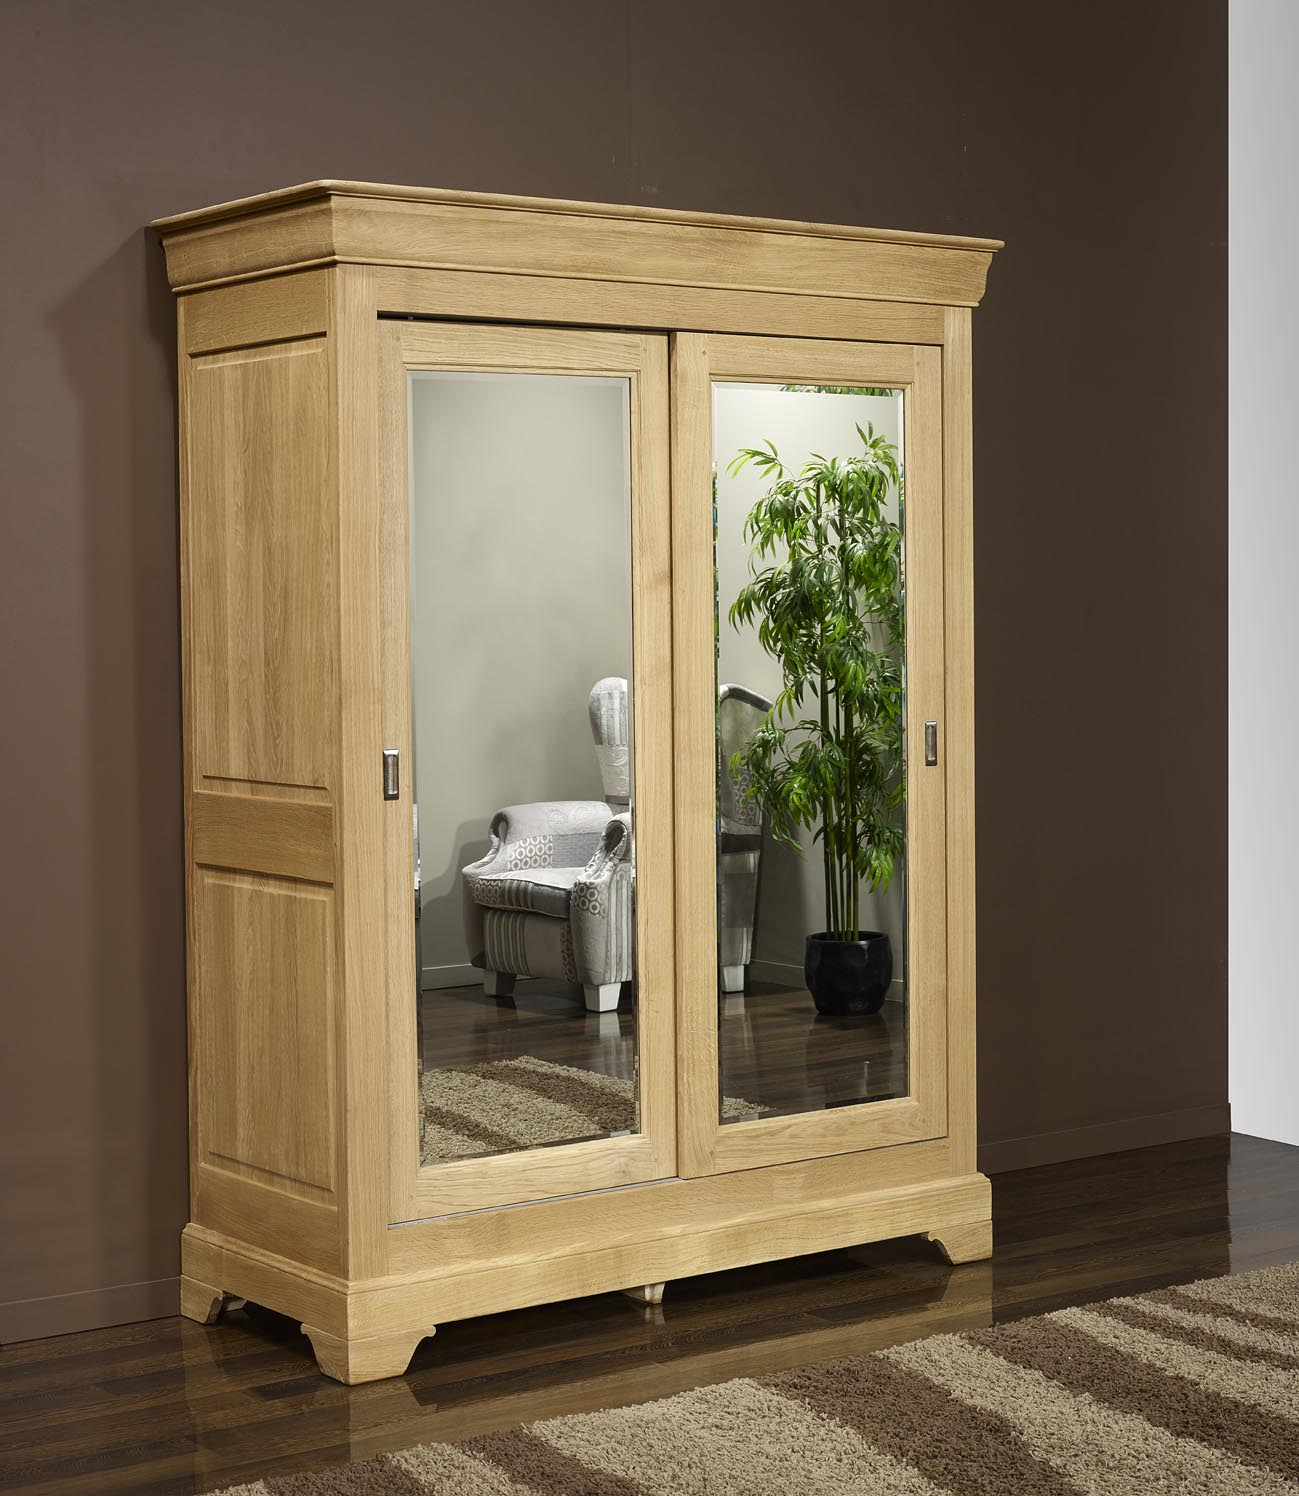 armoire 2 portes en ch ne massif de style louis philippe portes coulissantes meuble en ch ne. Black Bedroom Furniture Sets. Home Design Ideas